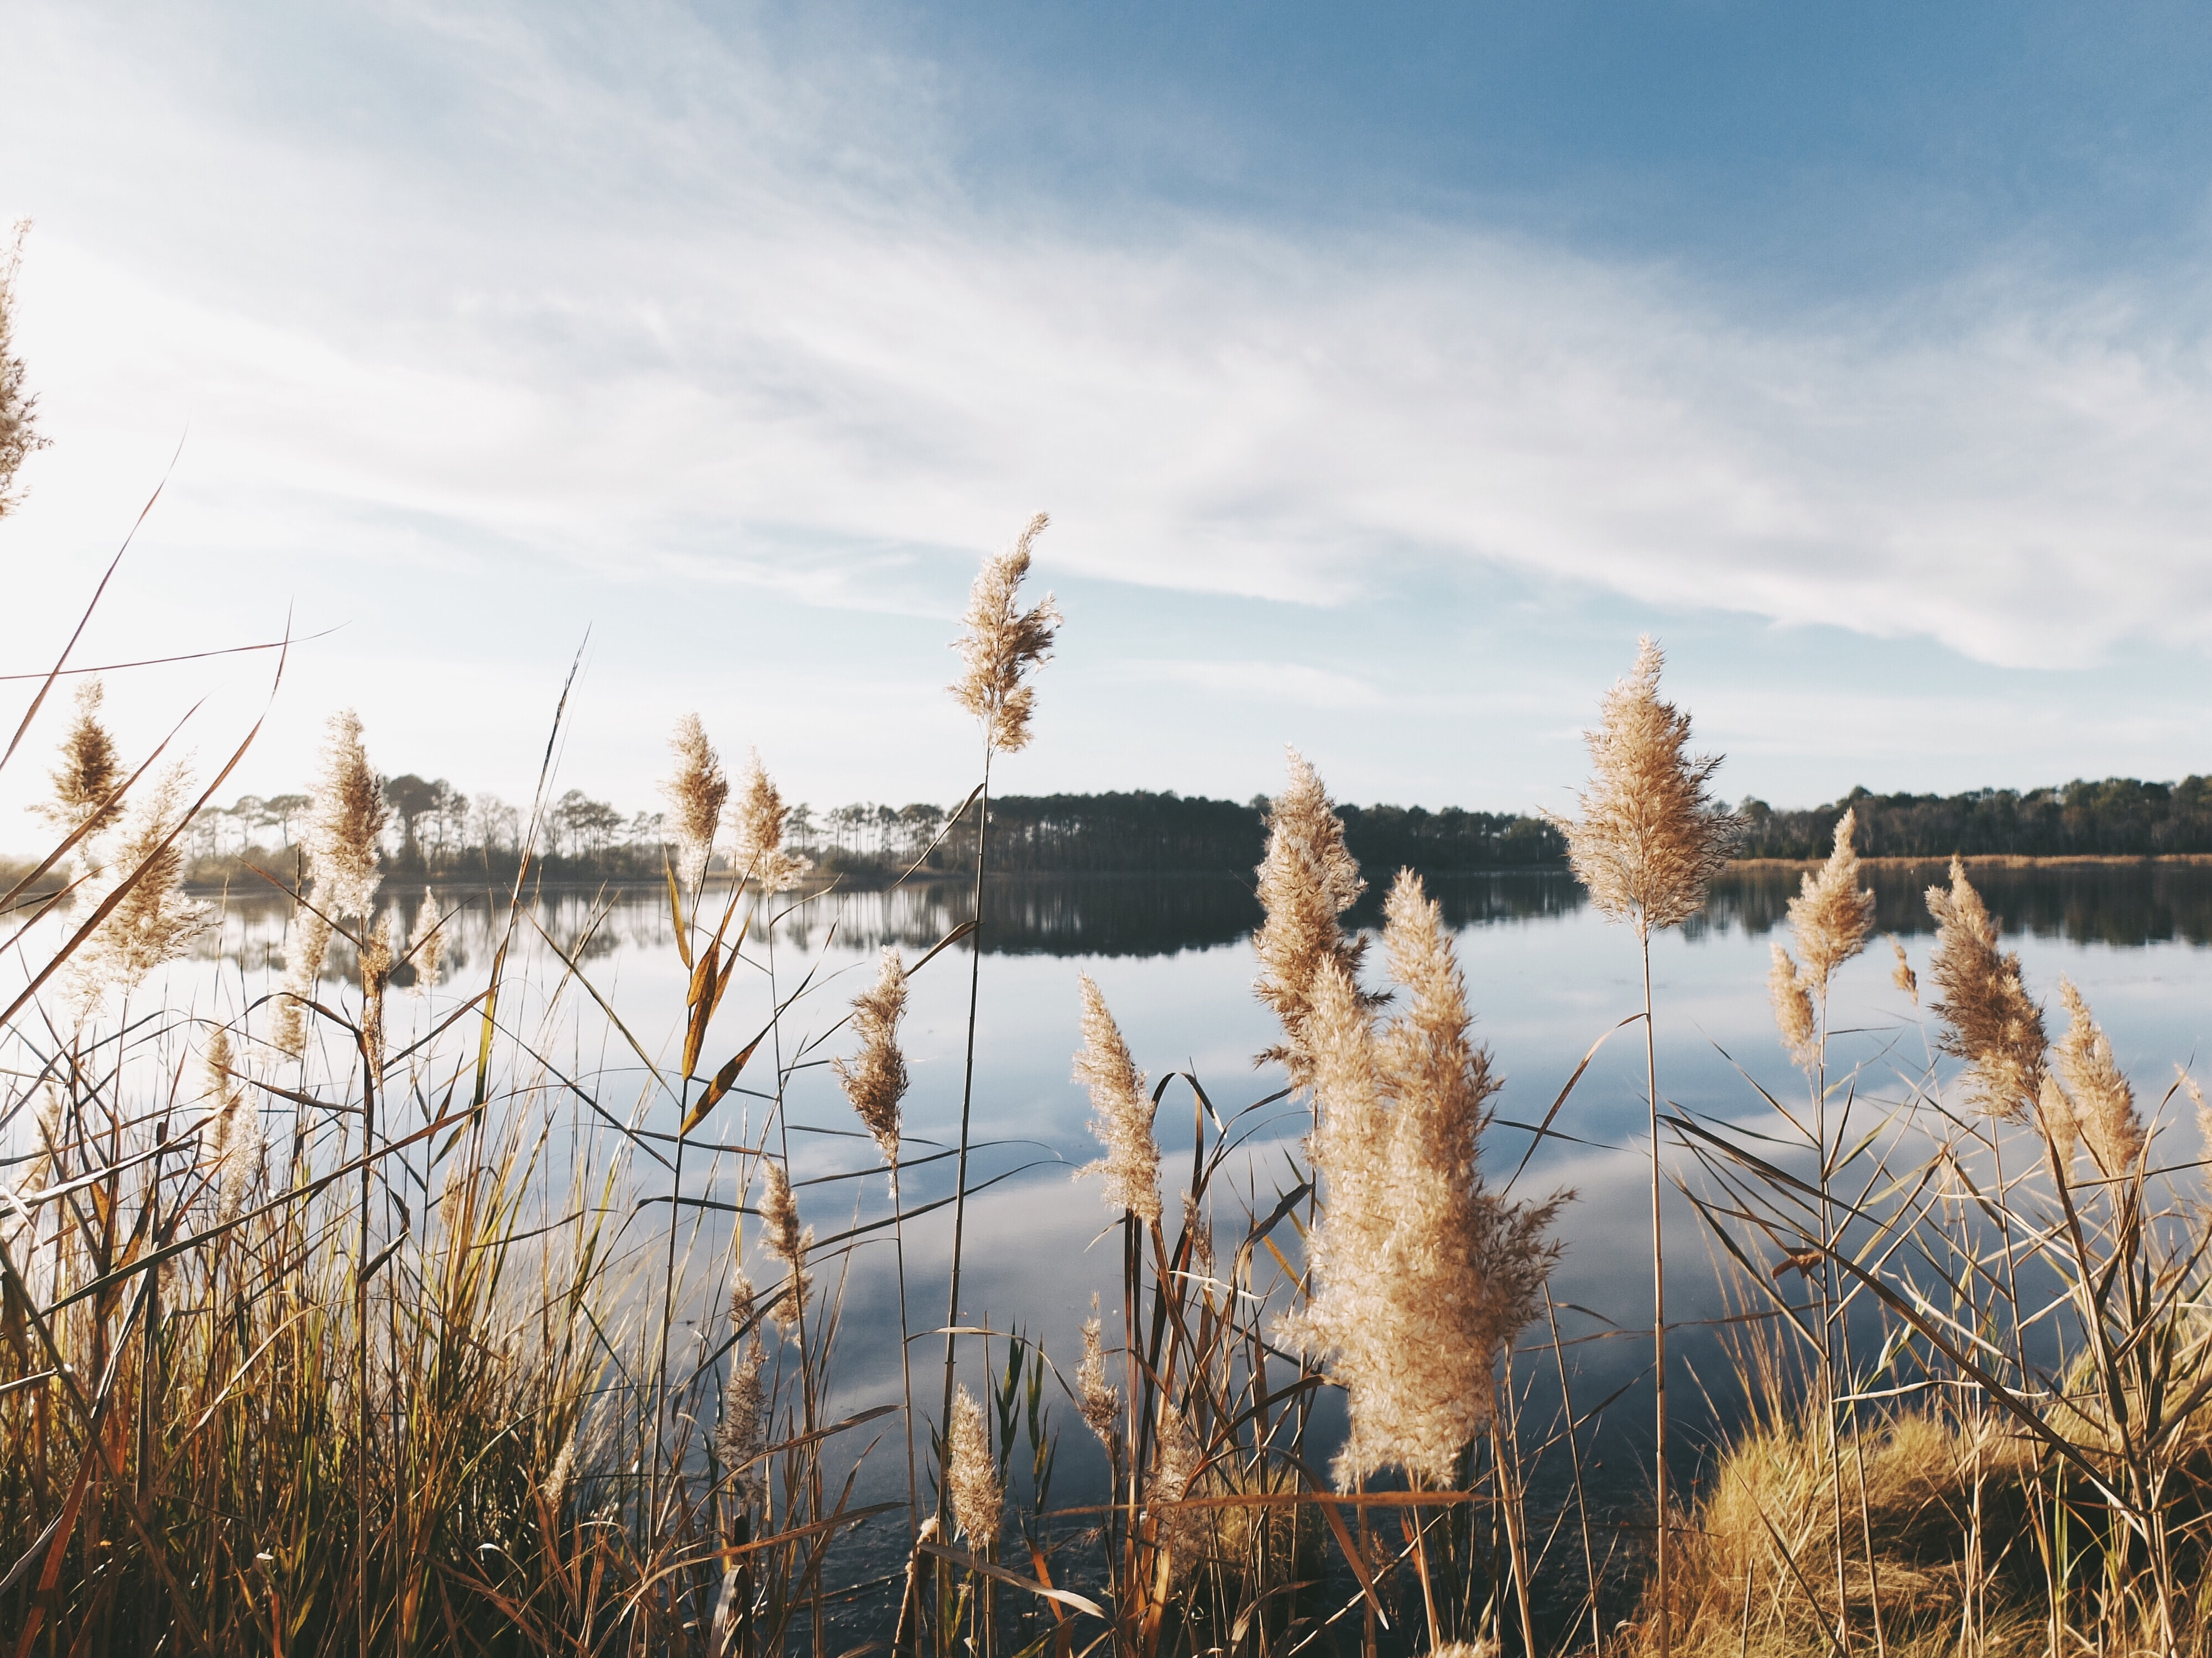 Tall grass on a lake's shore in Selbyville